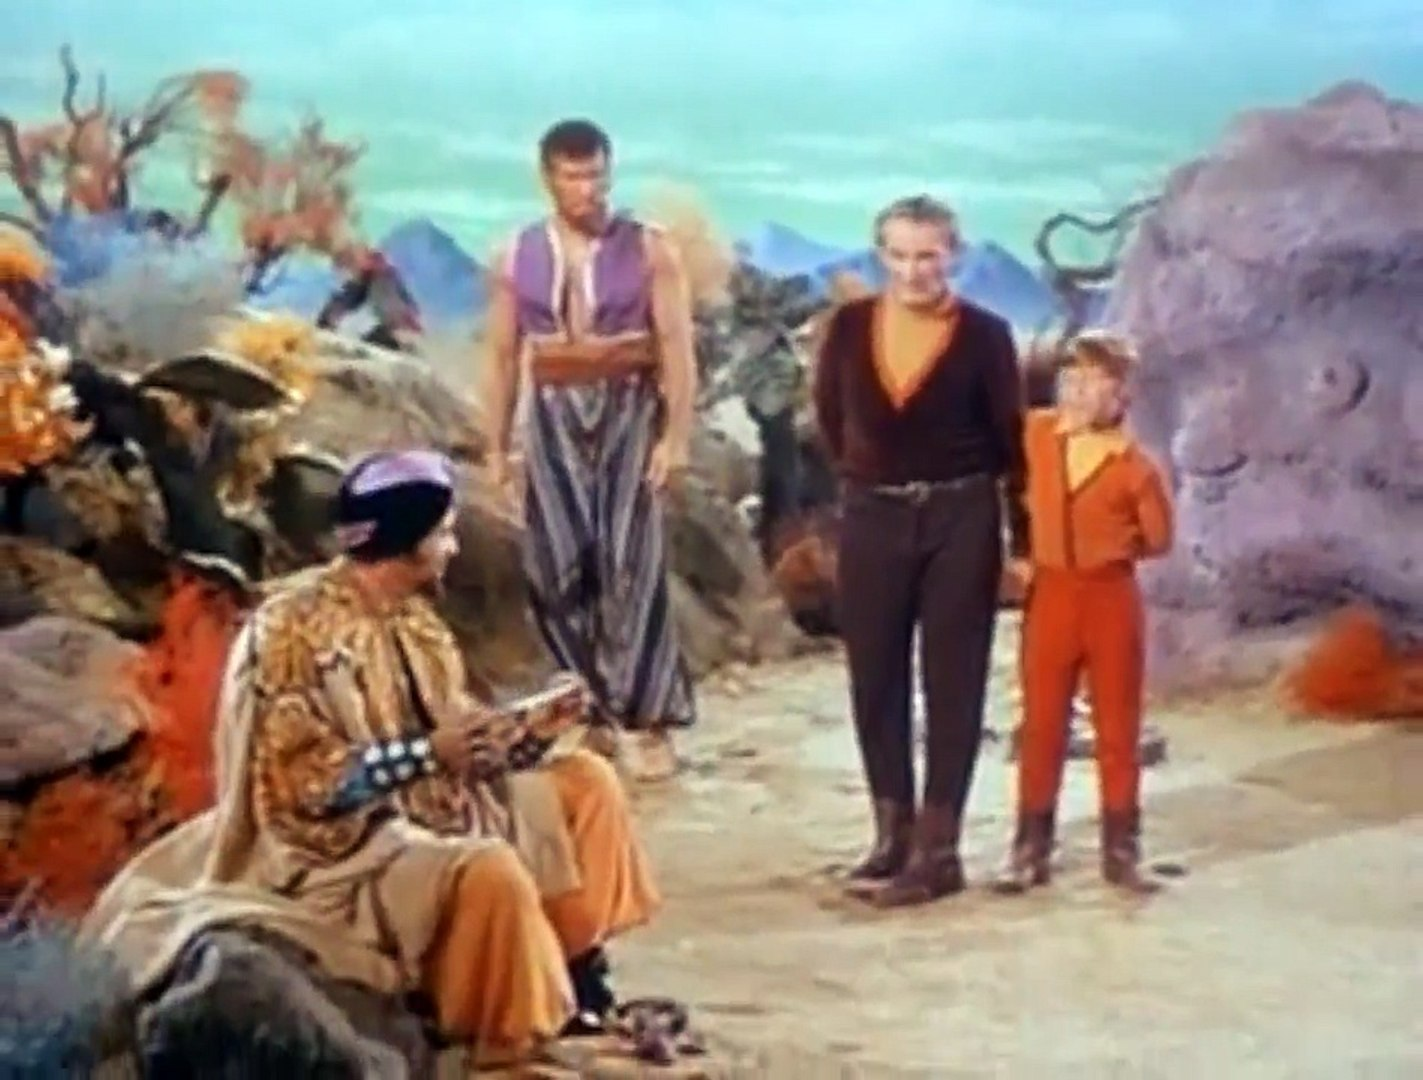 Lost In Space S02 E9  The Thief From Outer Space